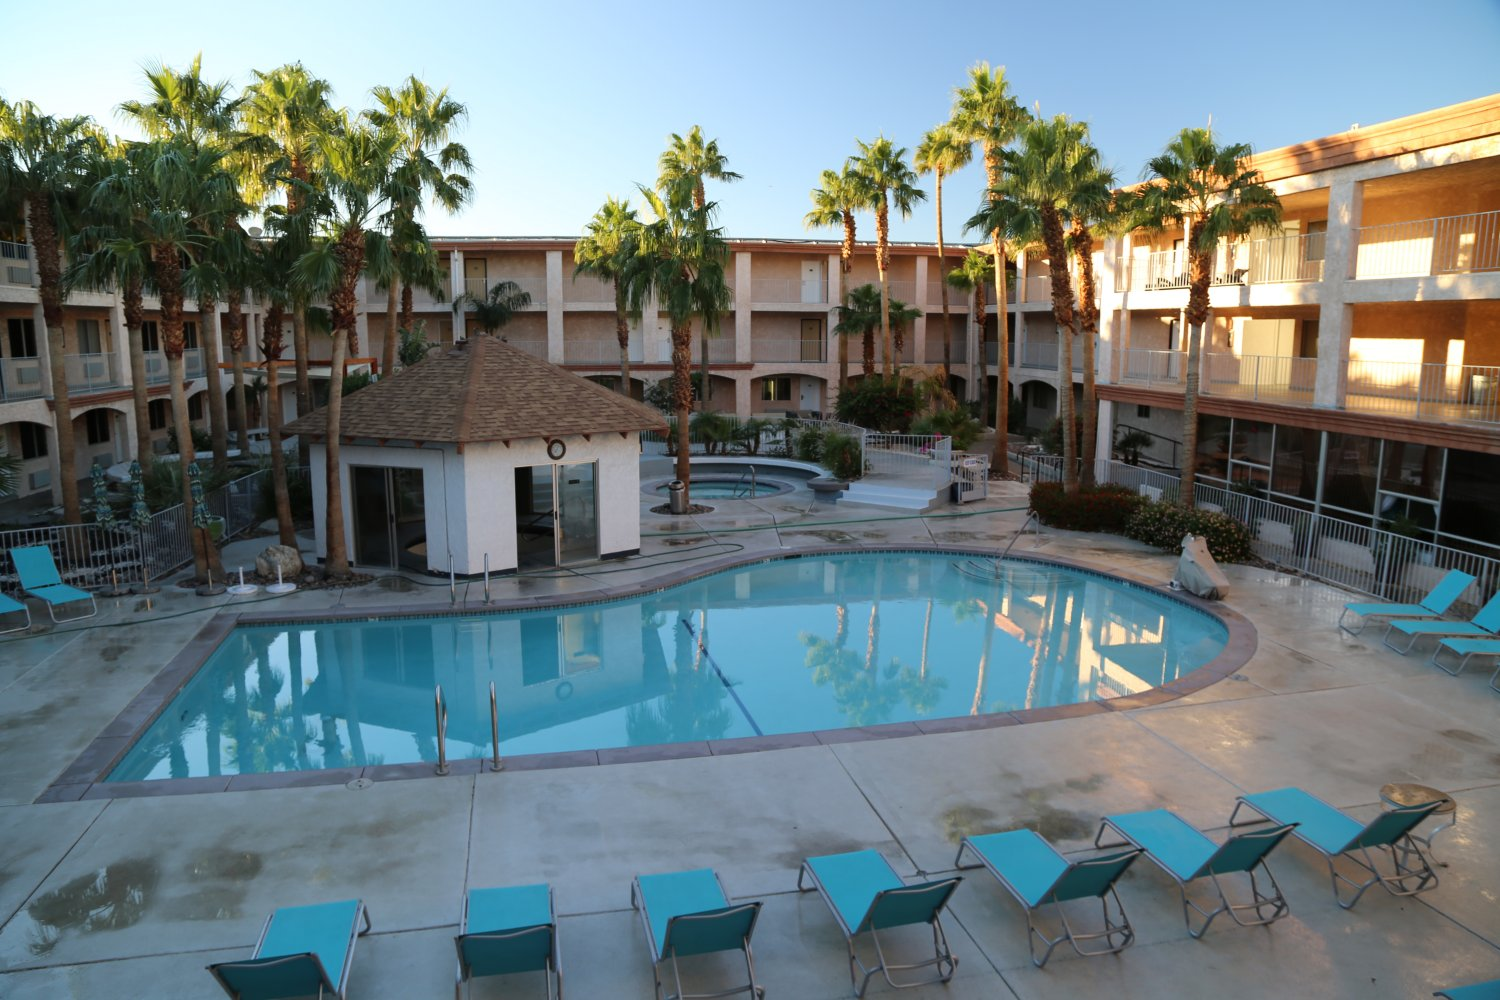 Aqua Soleil Hotel And Mineral Water Spa Is Located In North Palm Springs At 14500 Drive About 25 Minutes From Downtown